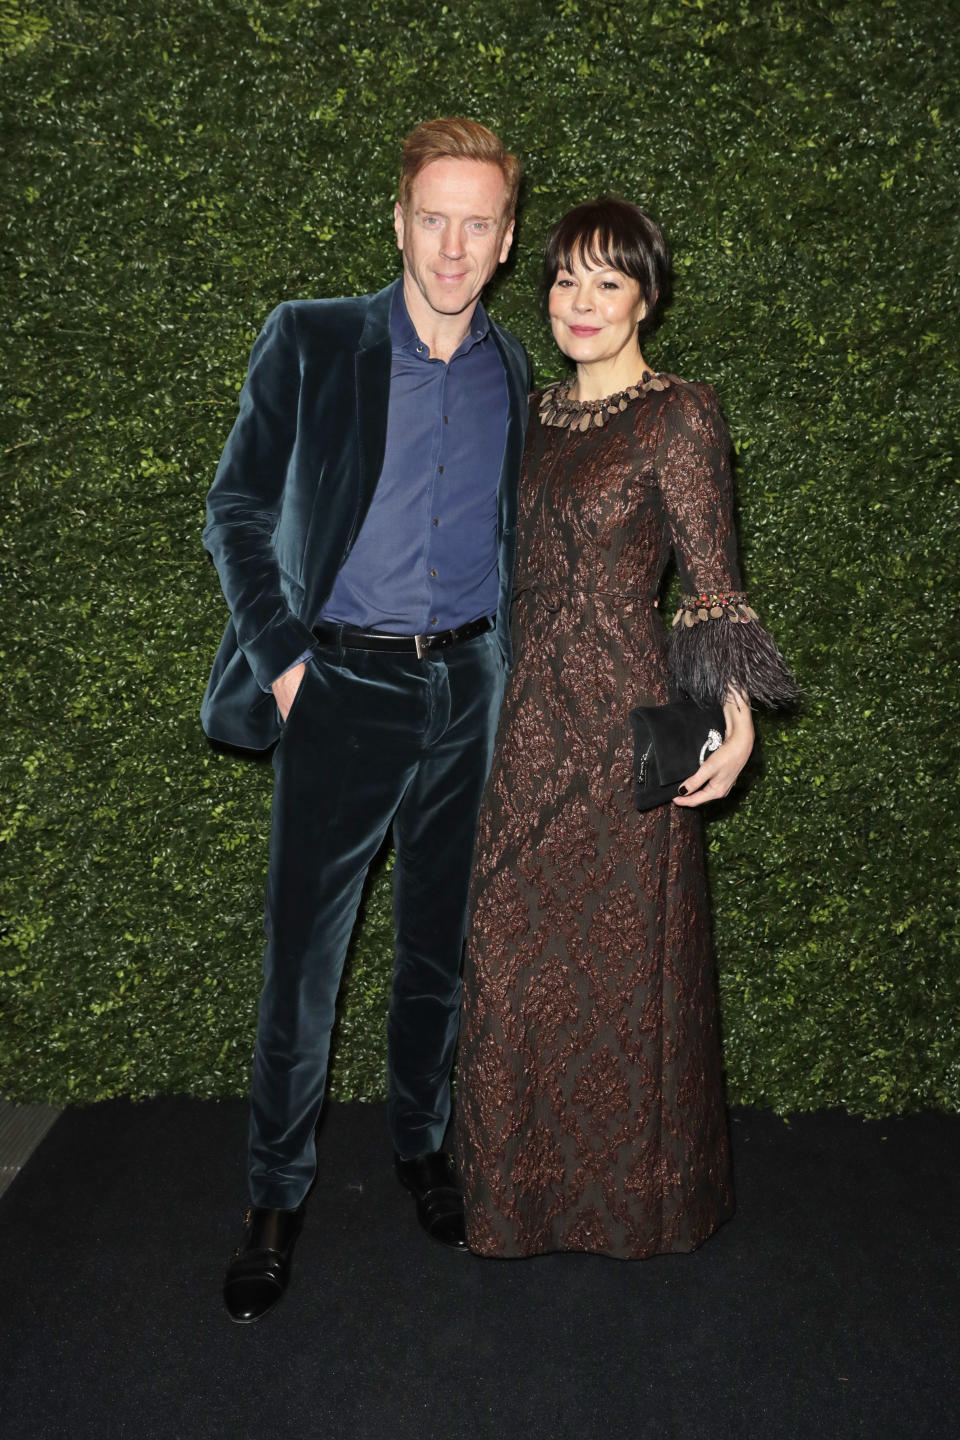 Damian Lewis and Helen McCrory pose for a photo together